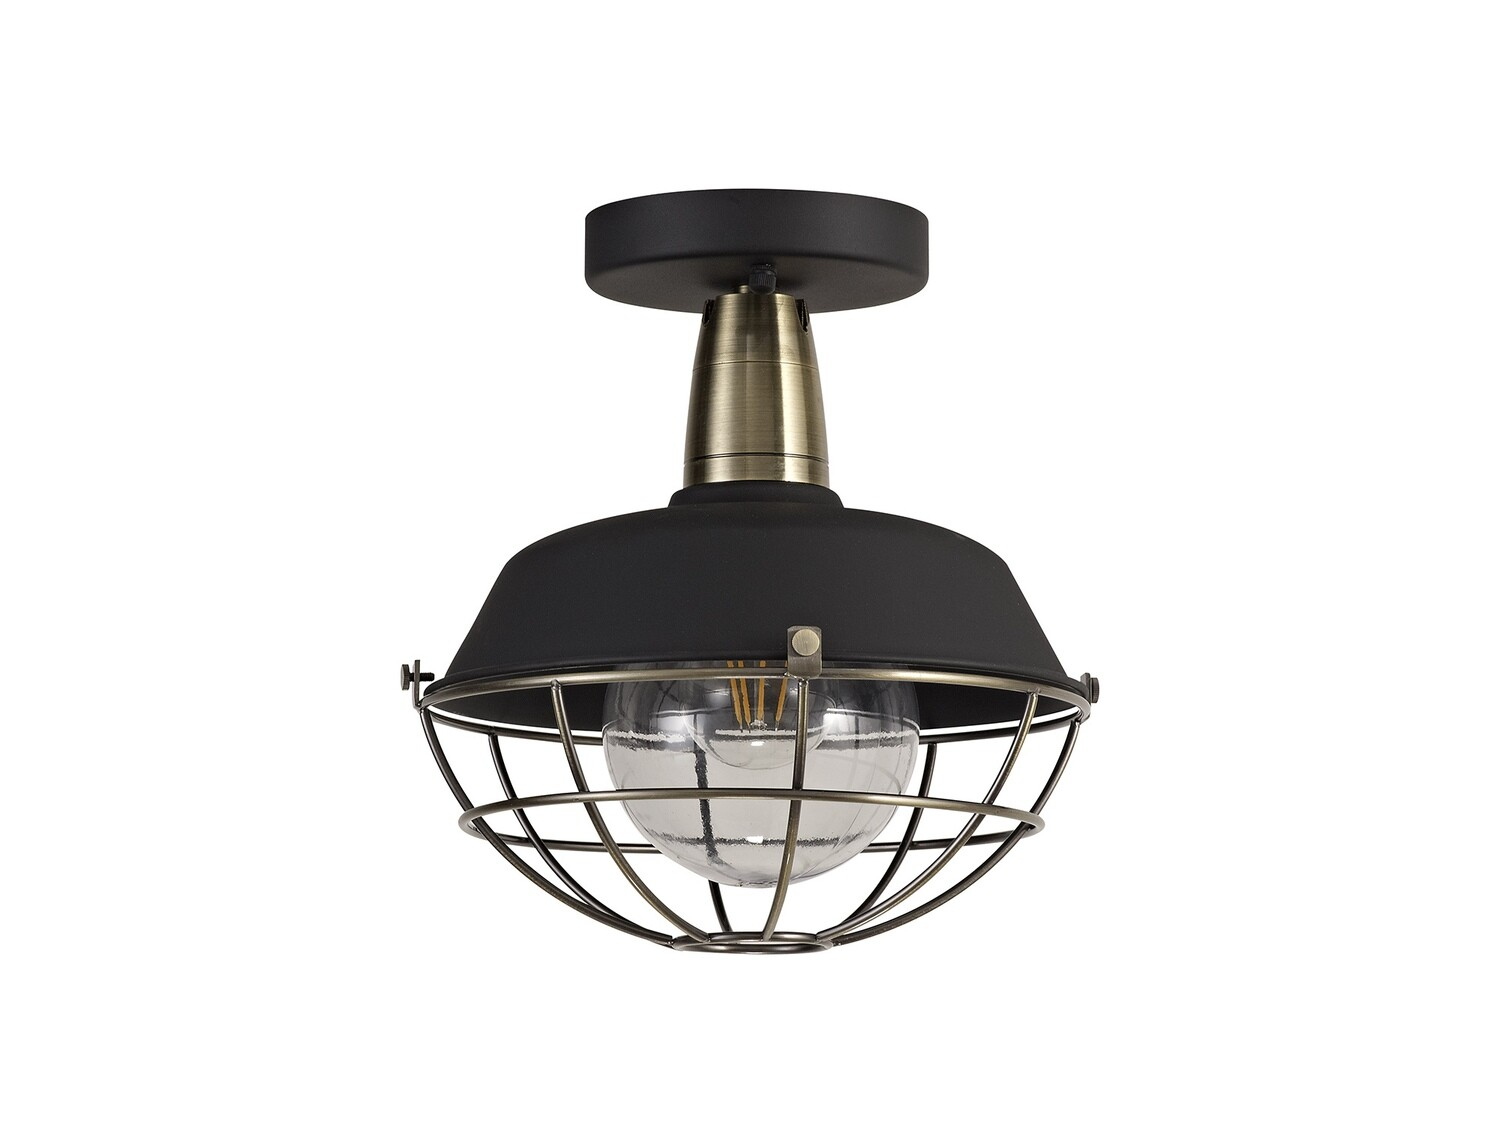 Mudita Semi-Flush Ceiling, 1 Light E27, IP65, Matt Black/Antique Brass